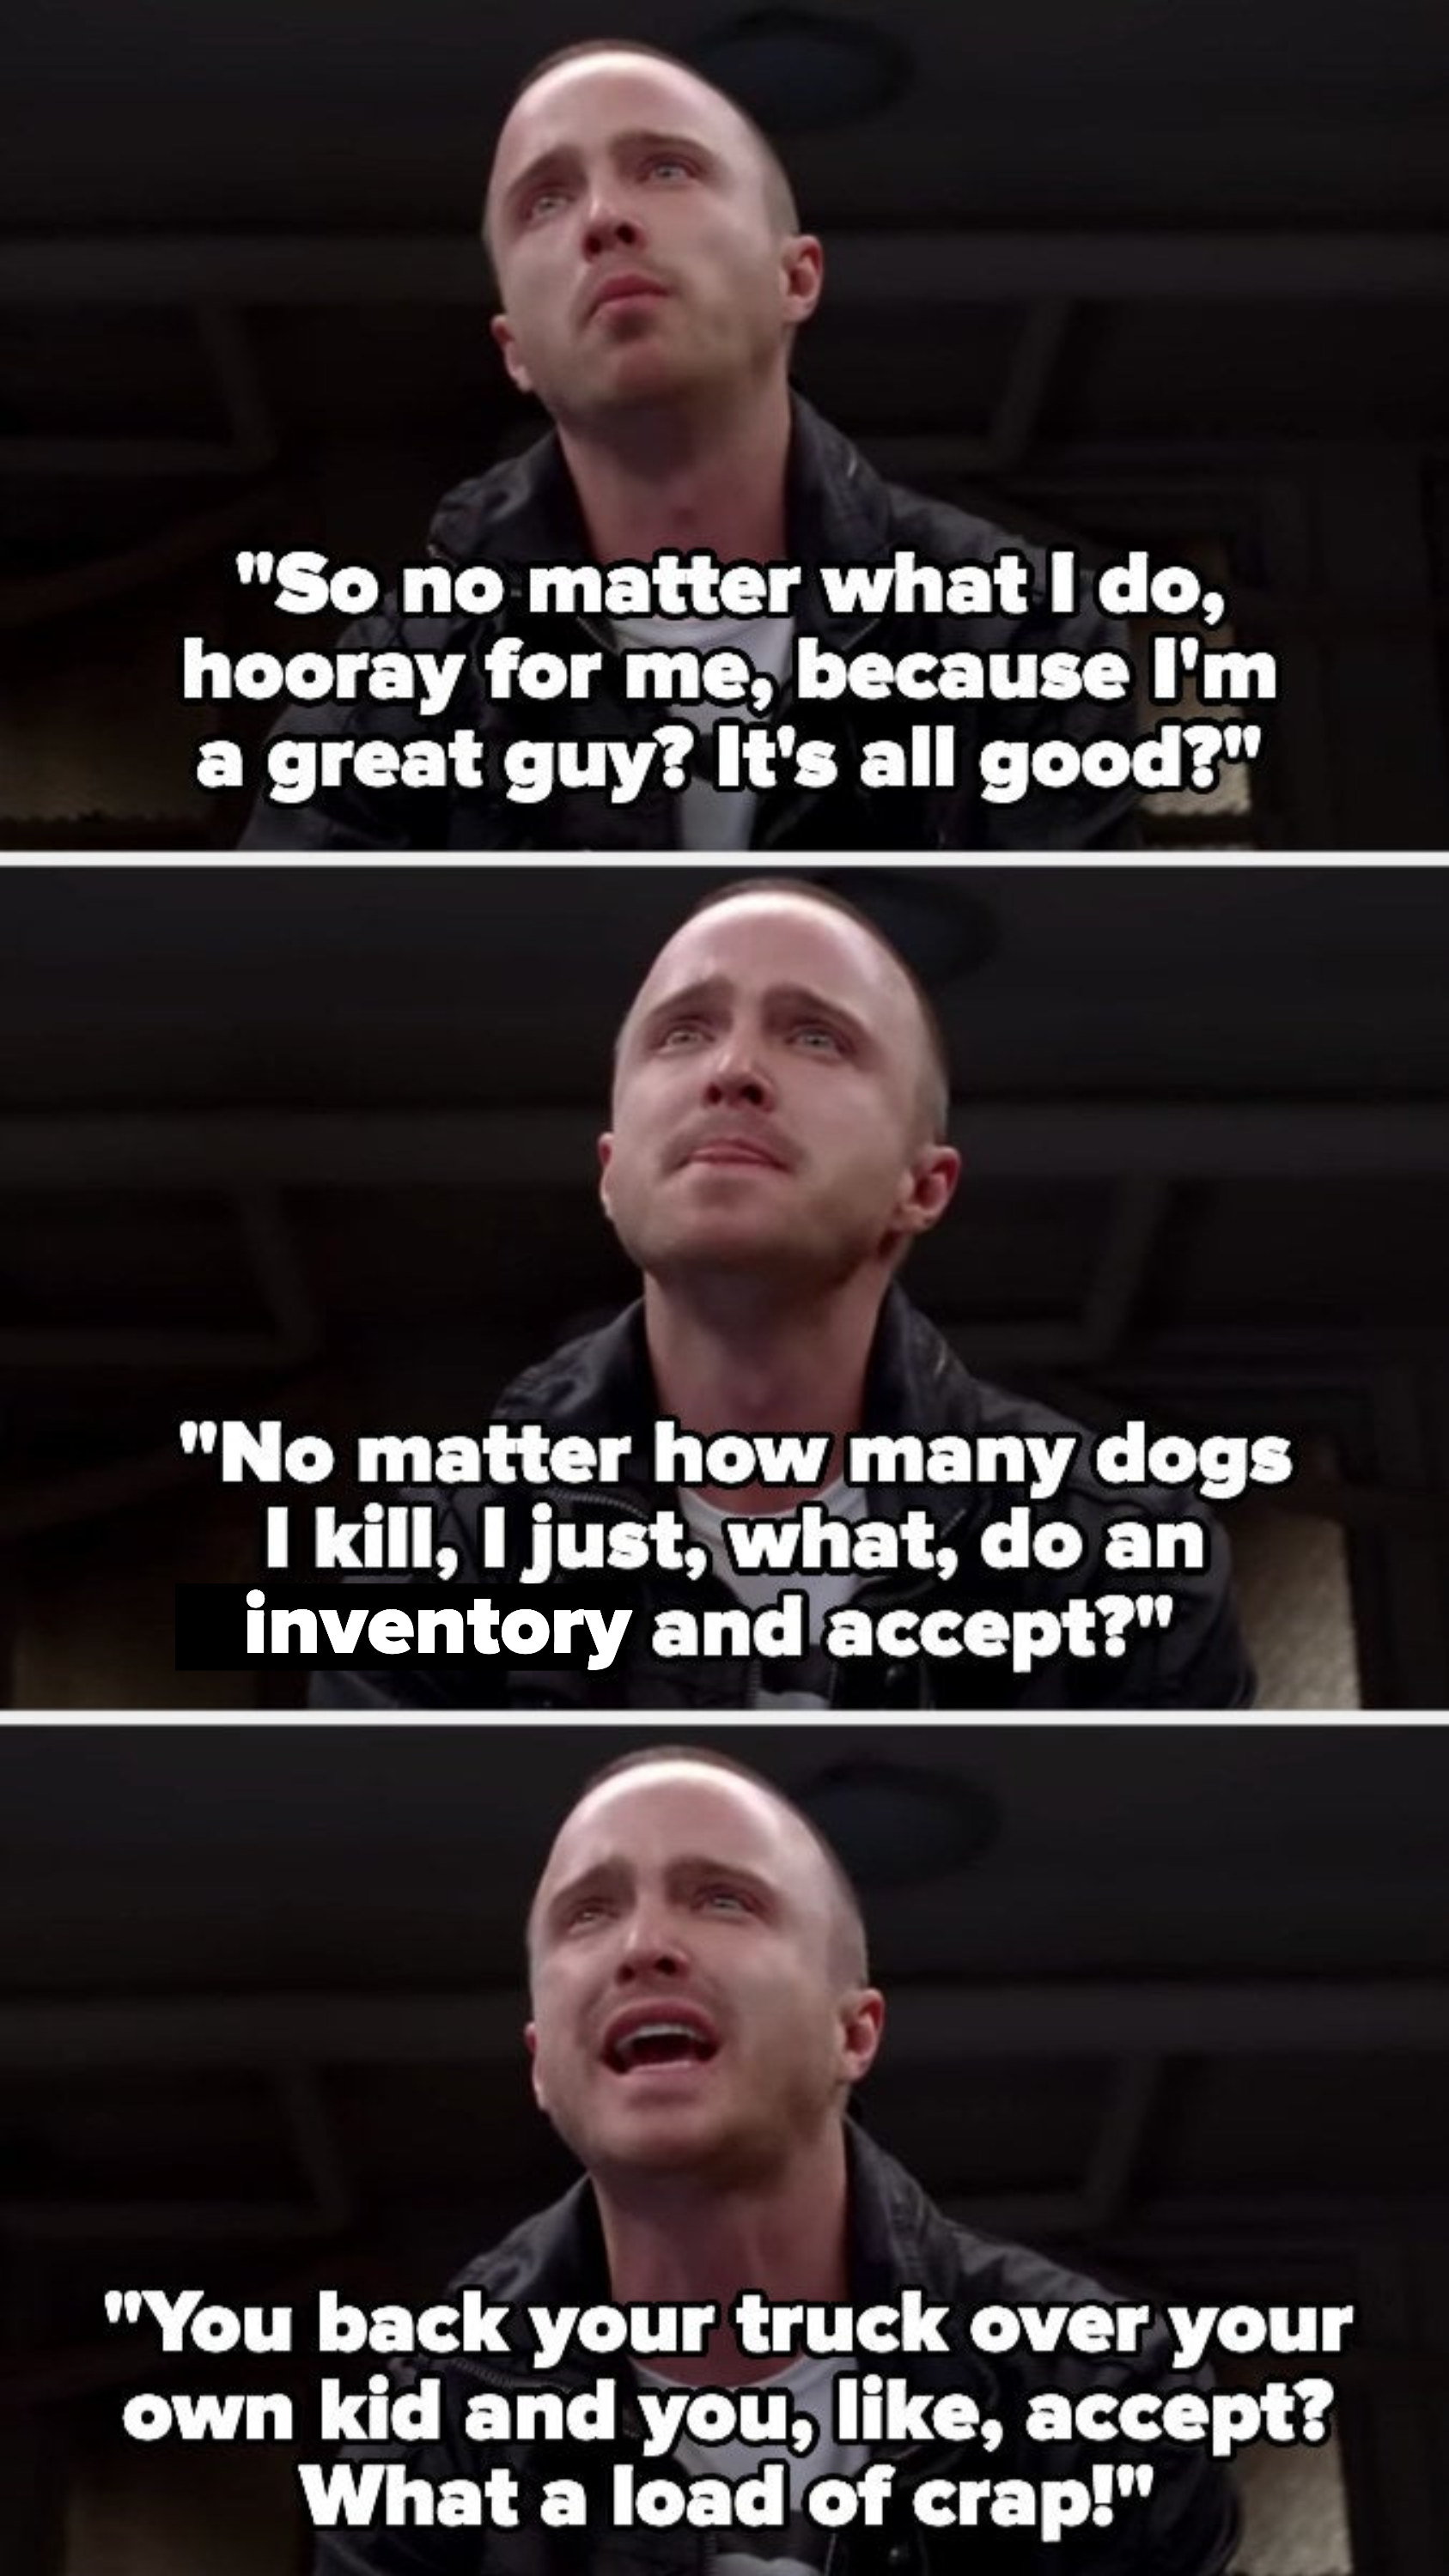 """Jessie asks if then it doesn't matter what he does or how many dogs he kills, because if he's a good guy and """"accepts"""" it it's okay, then calls that a load of crap"""